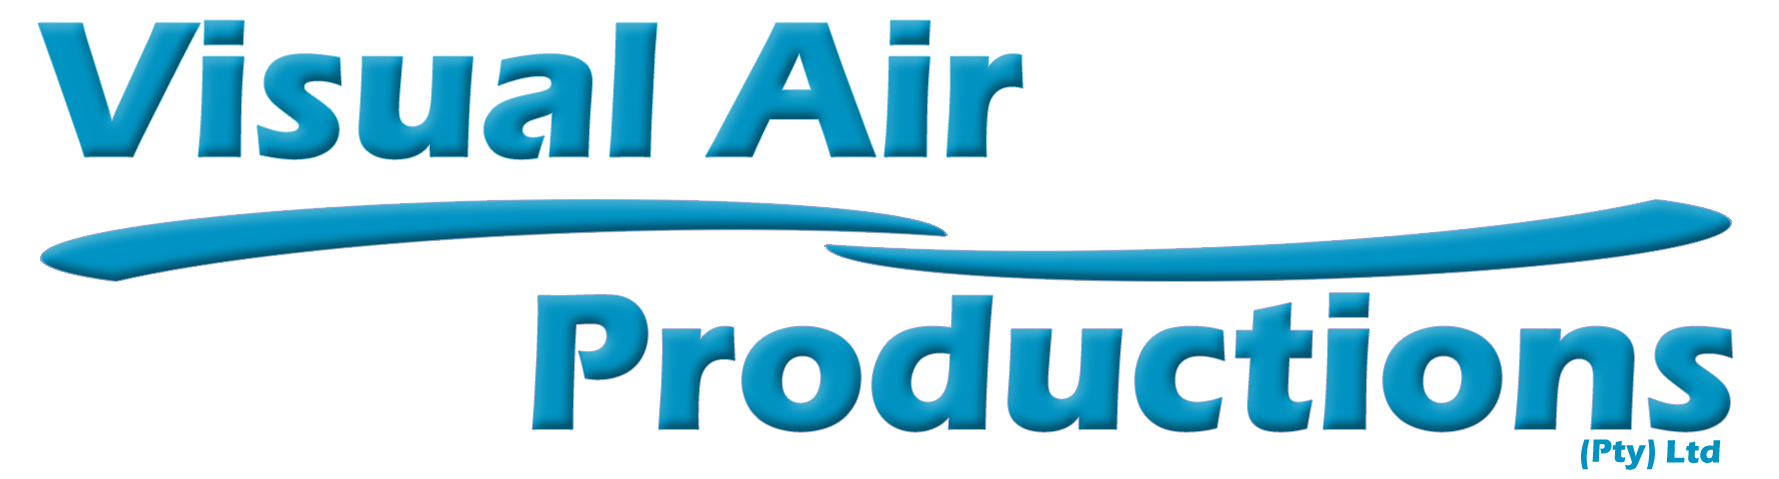 Visual Air Products